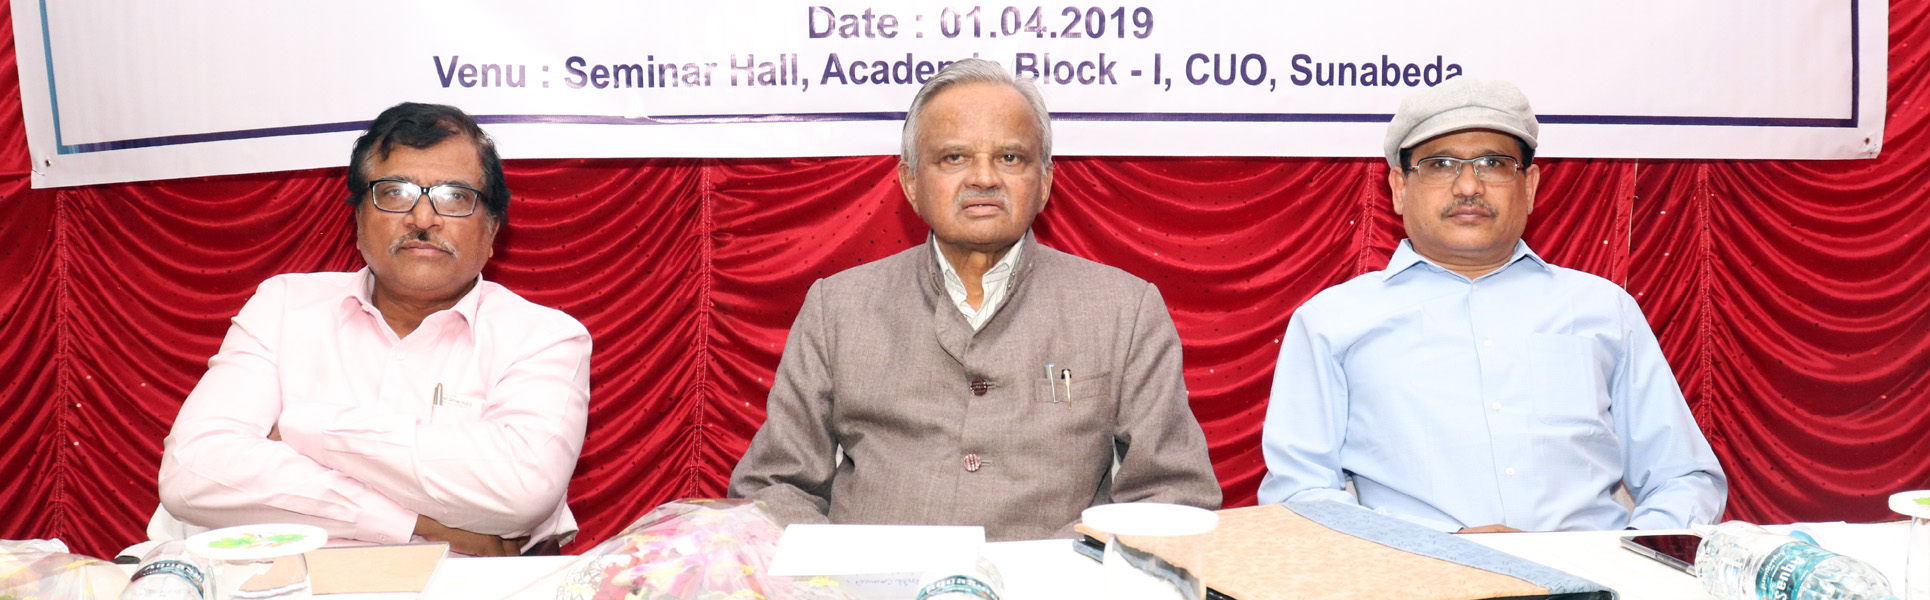 GUESTS ON DAIS PROF. P. V. KRISHNA BHATTA, HON'BLE CHANCELLOR, CUO; PROF. S. K. PALITA, HON'BLE VICE-CHANCELLOR I/C., CUO AND PROF. ASIT KUMAR DAS, REGISTRAR, CUO